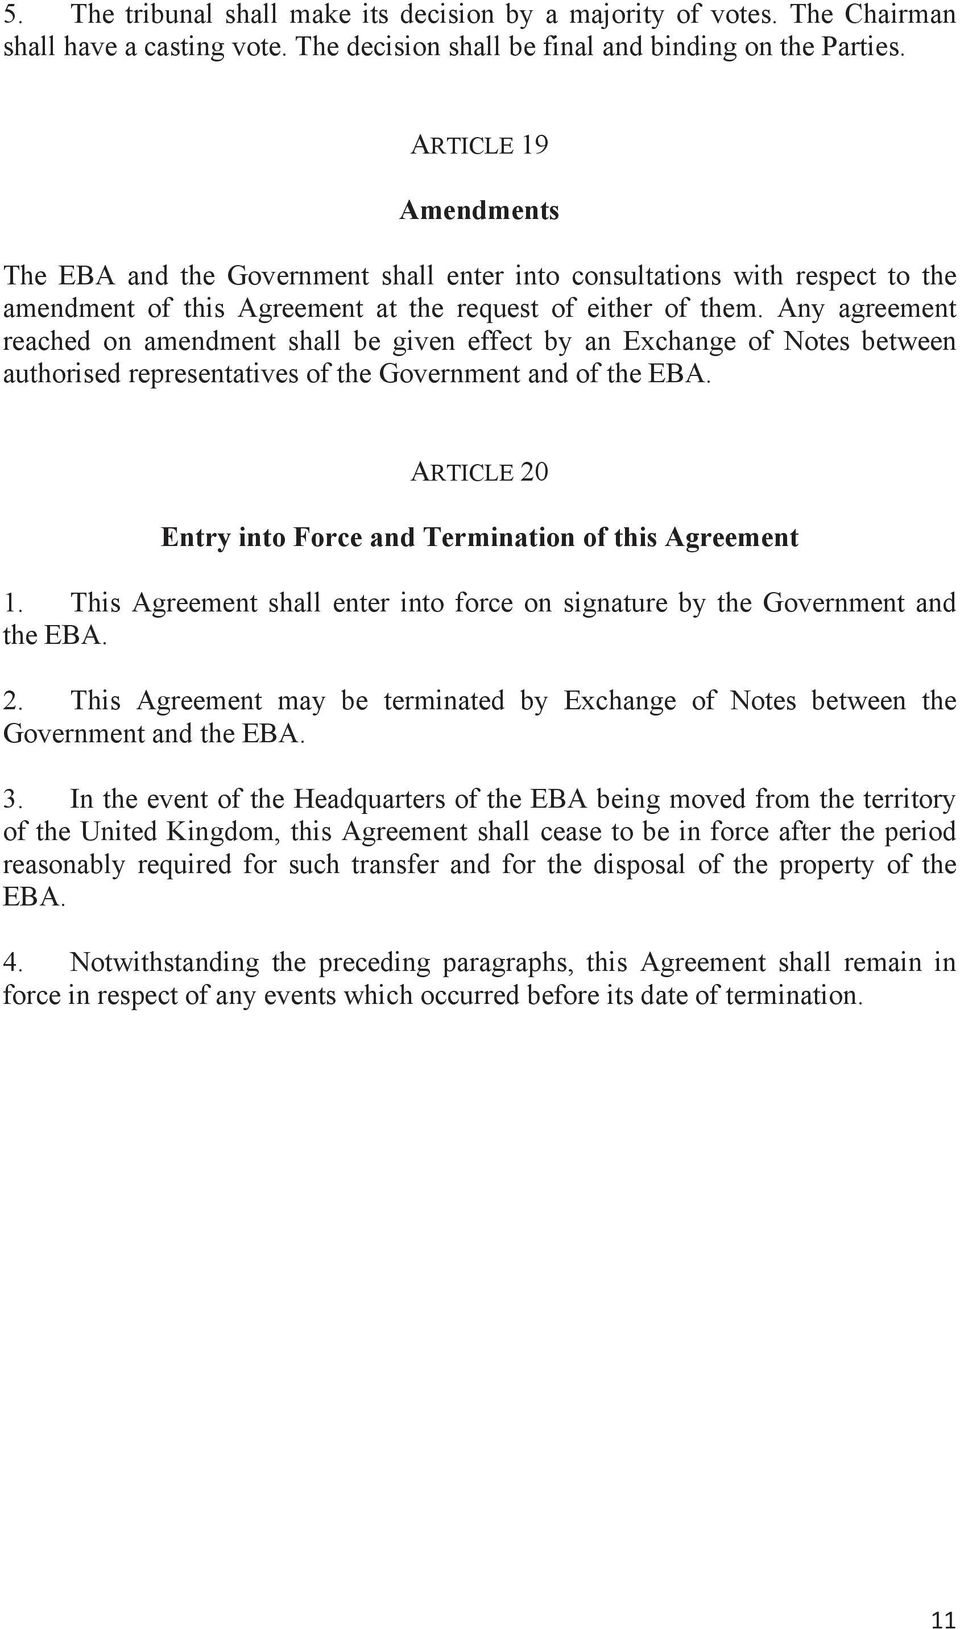 Any agreement reached on amendment shall be given effect by an Exchange of Notes between authorised representatives of the Government and of the EBA.